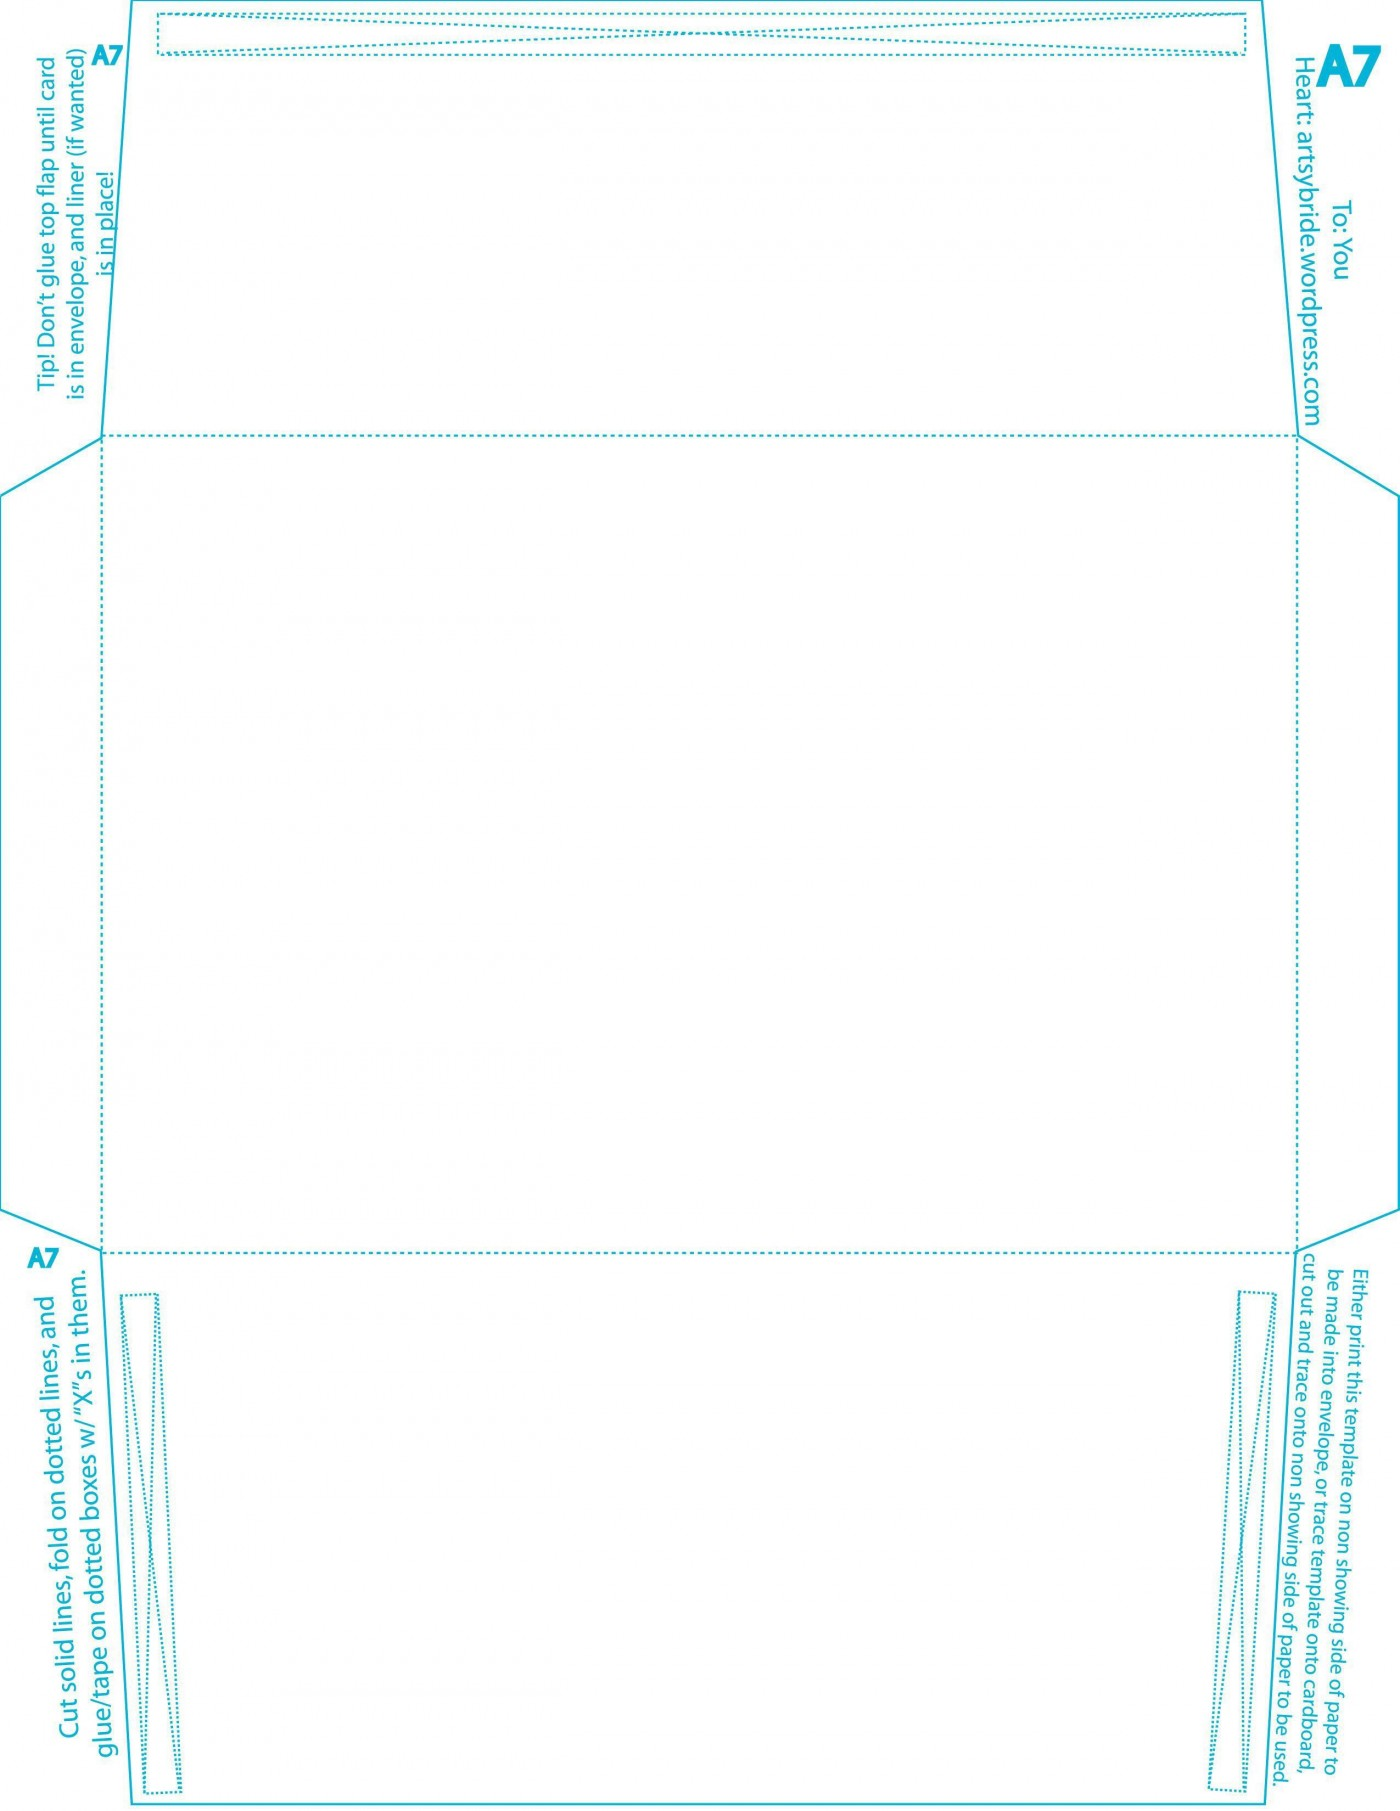 007 Top A7 Envelope Liner Template Free High Resolution 1400